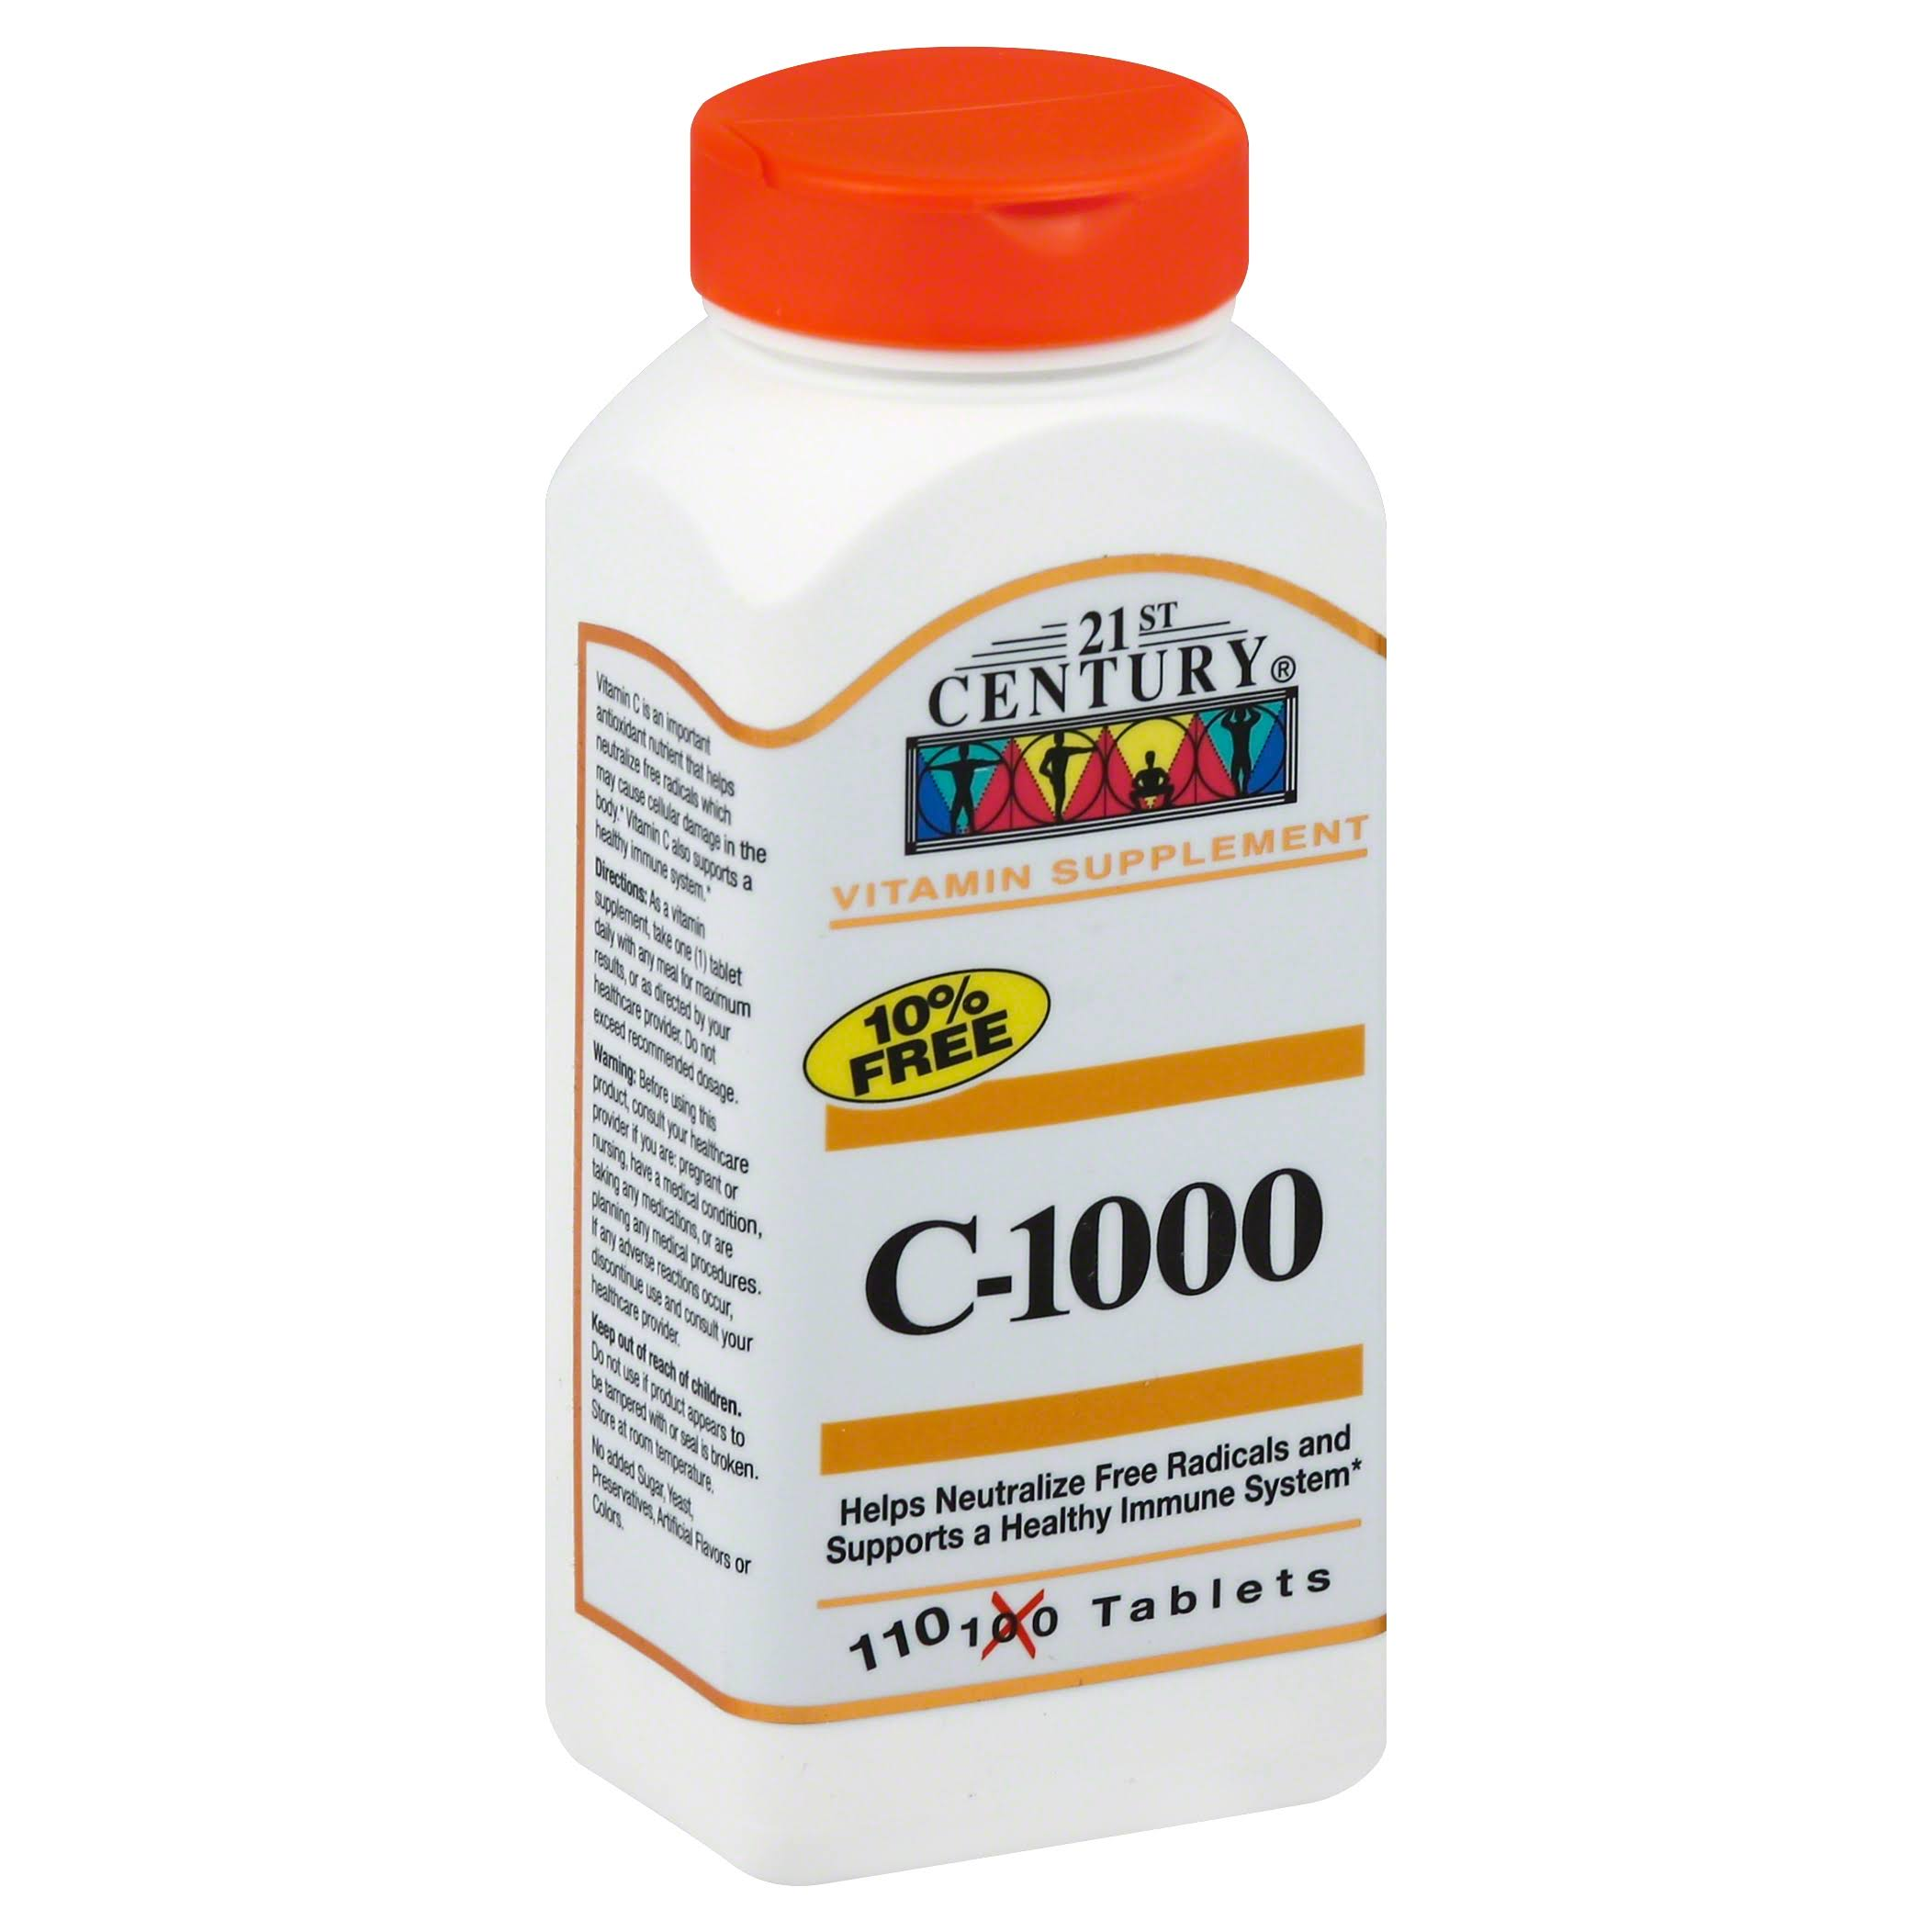 21st Century Health Care C1000 Vitamin Supplement - 110 Tablets